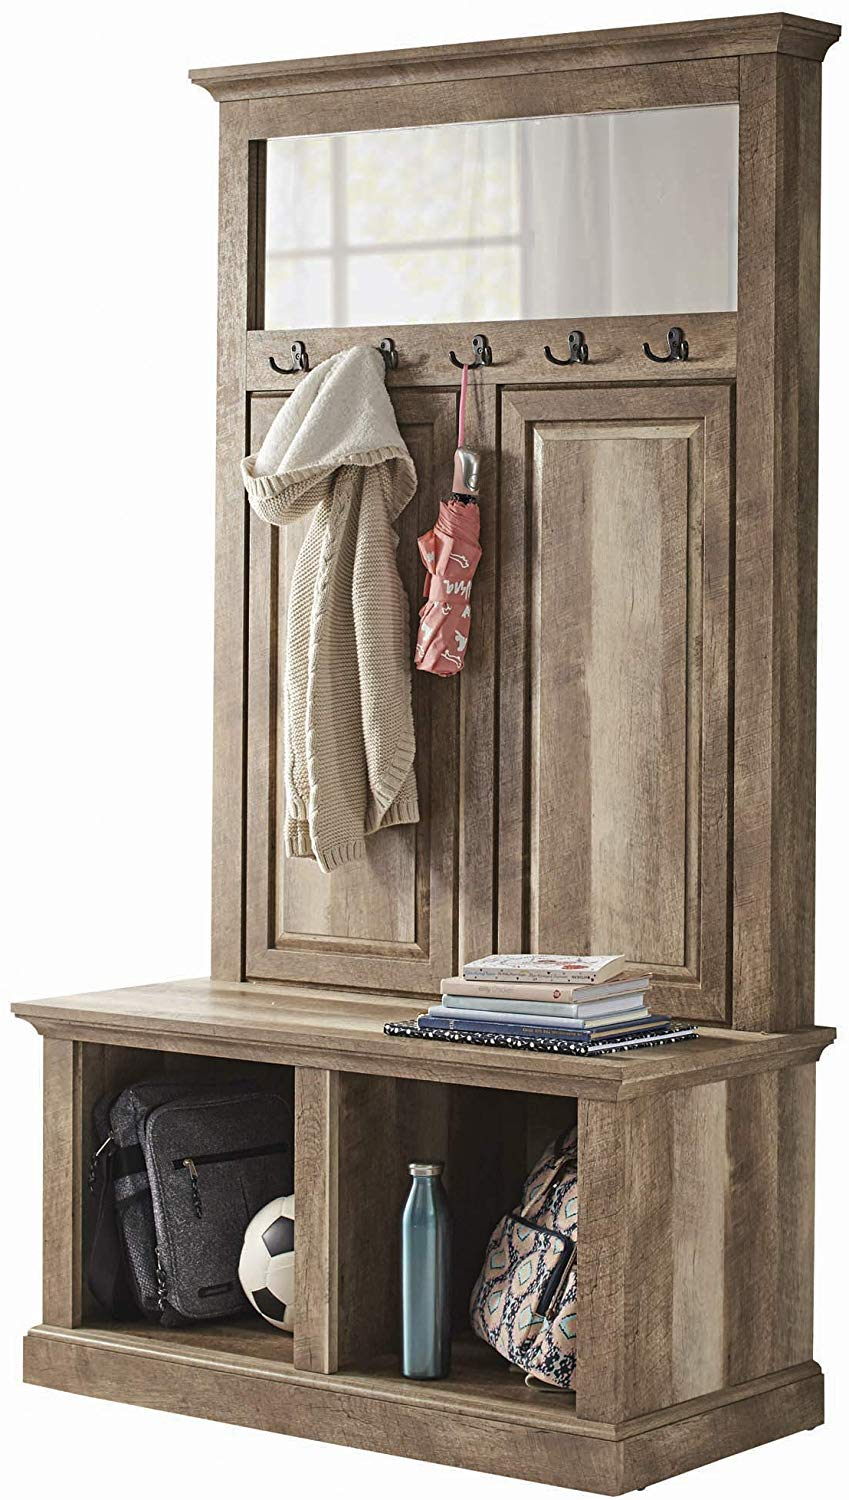 Hall Tree Storage Bench Shelves Entryway Furniture | My